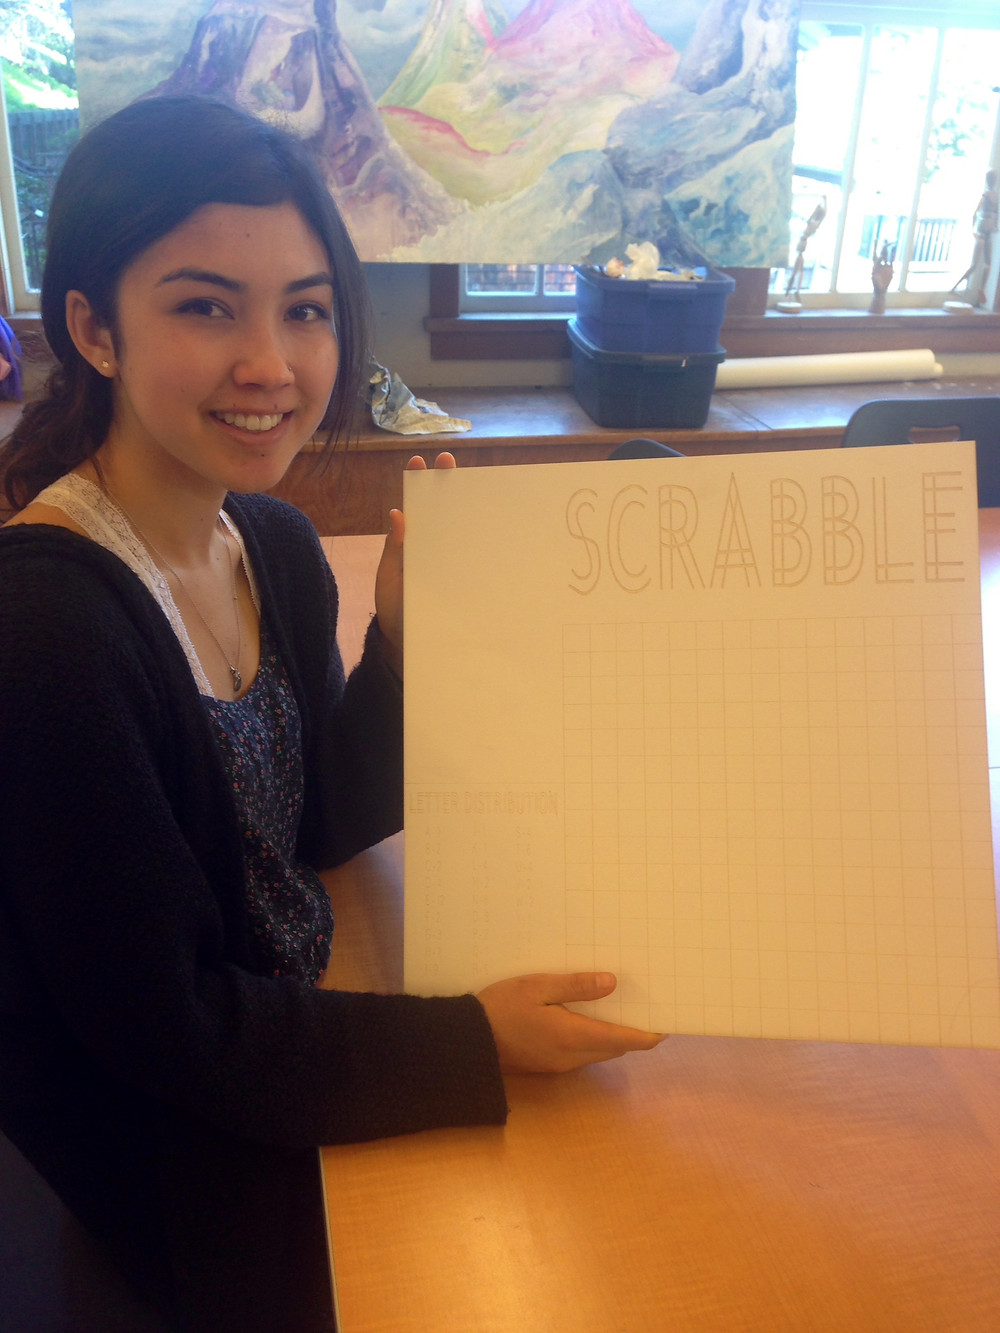 Mari K. '15 shows off a sketch of her redesigned Scrabble board game. Photography by Allie N. '15